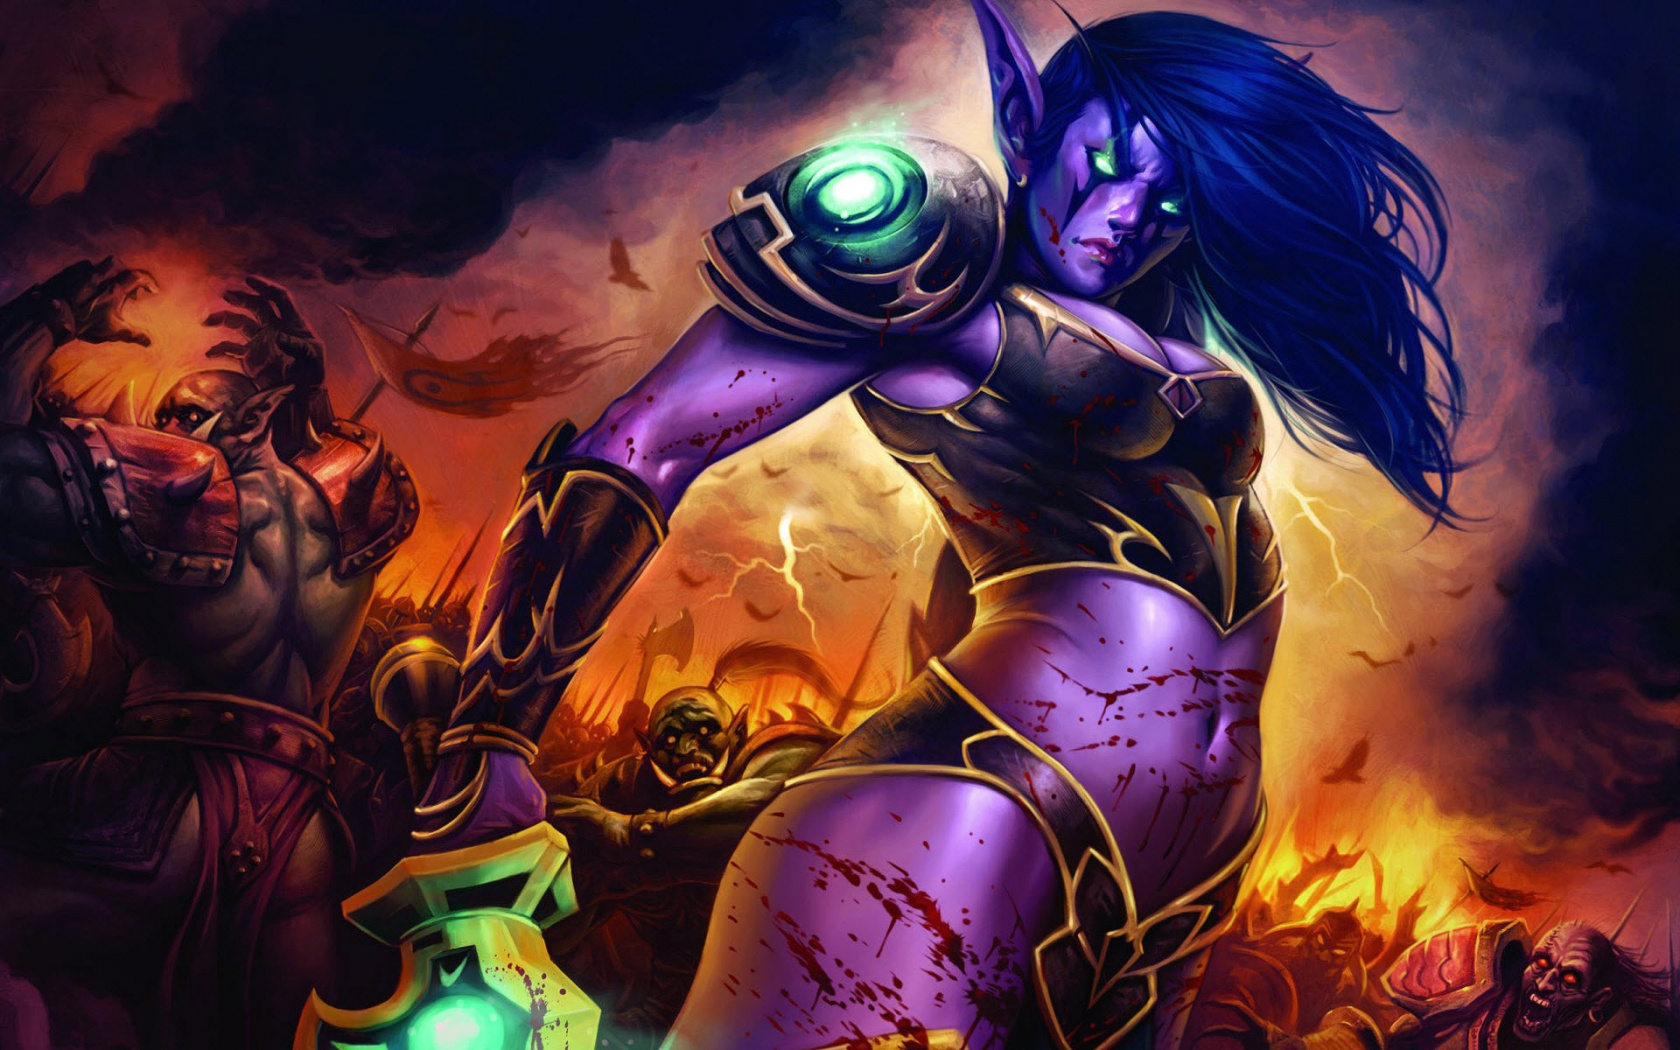 World Of Warcraft Lady Wallpapers In Jpg Format For Free Download